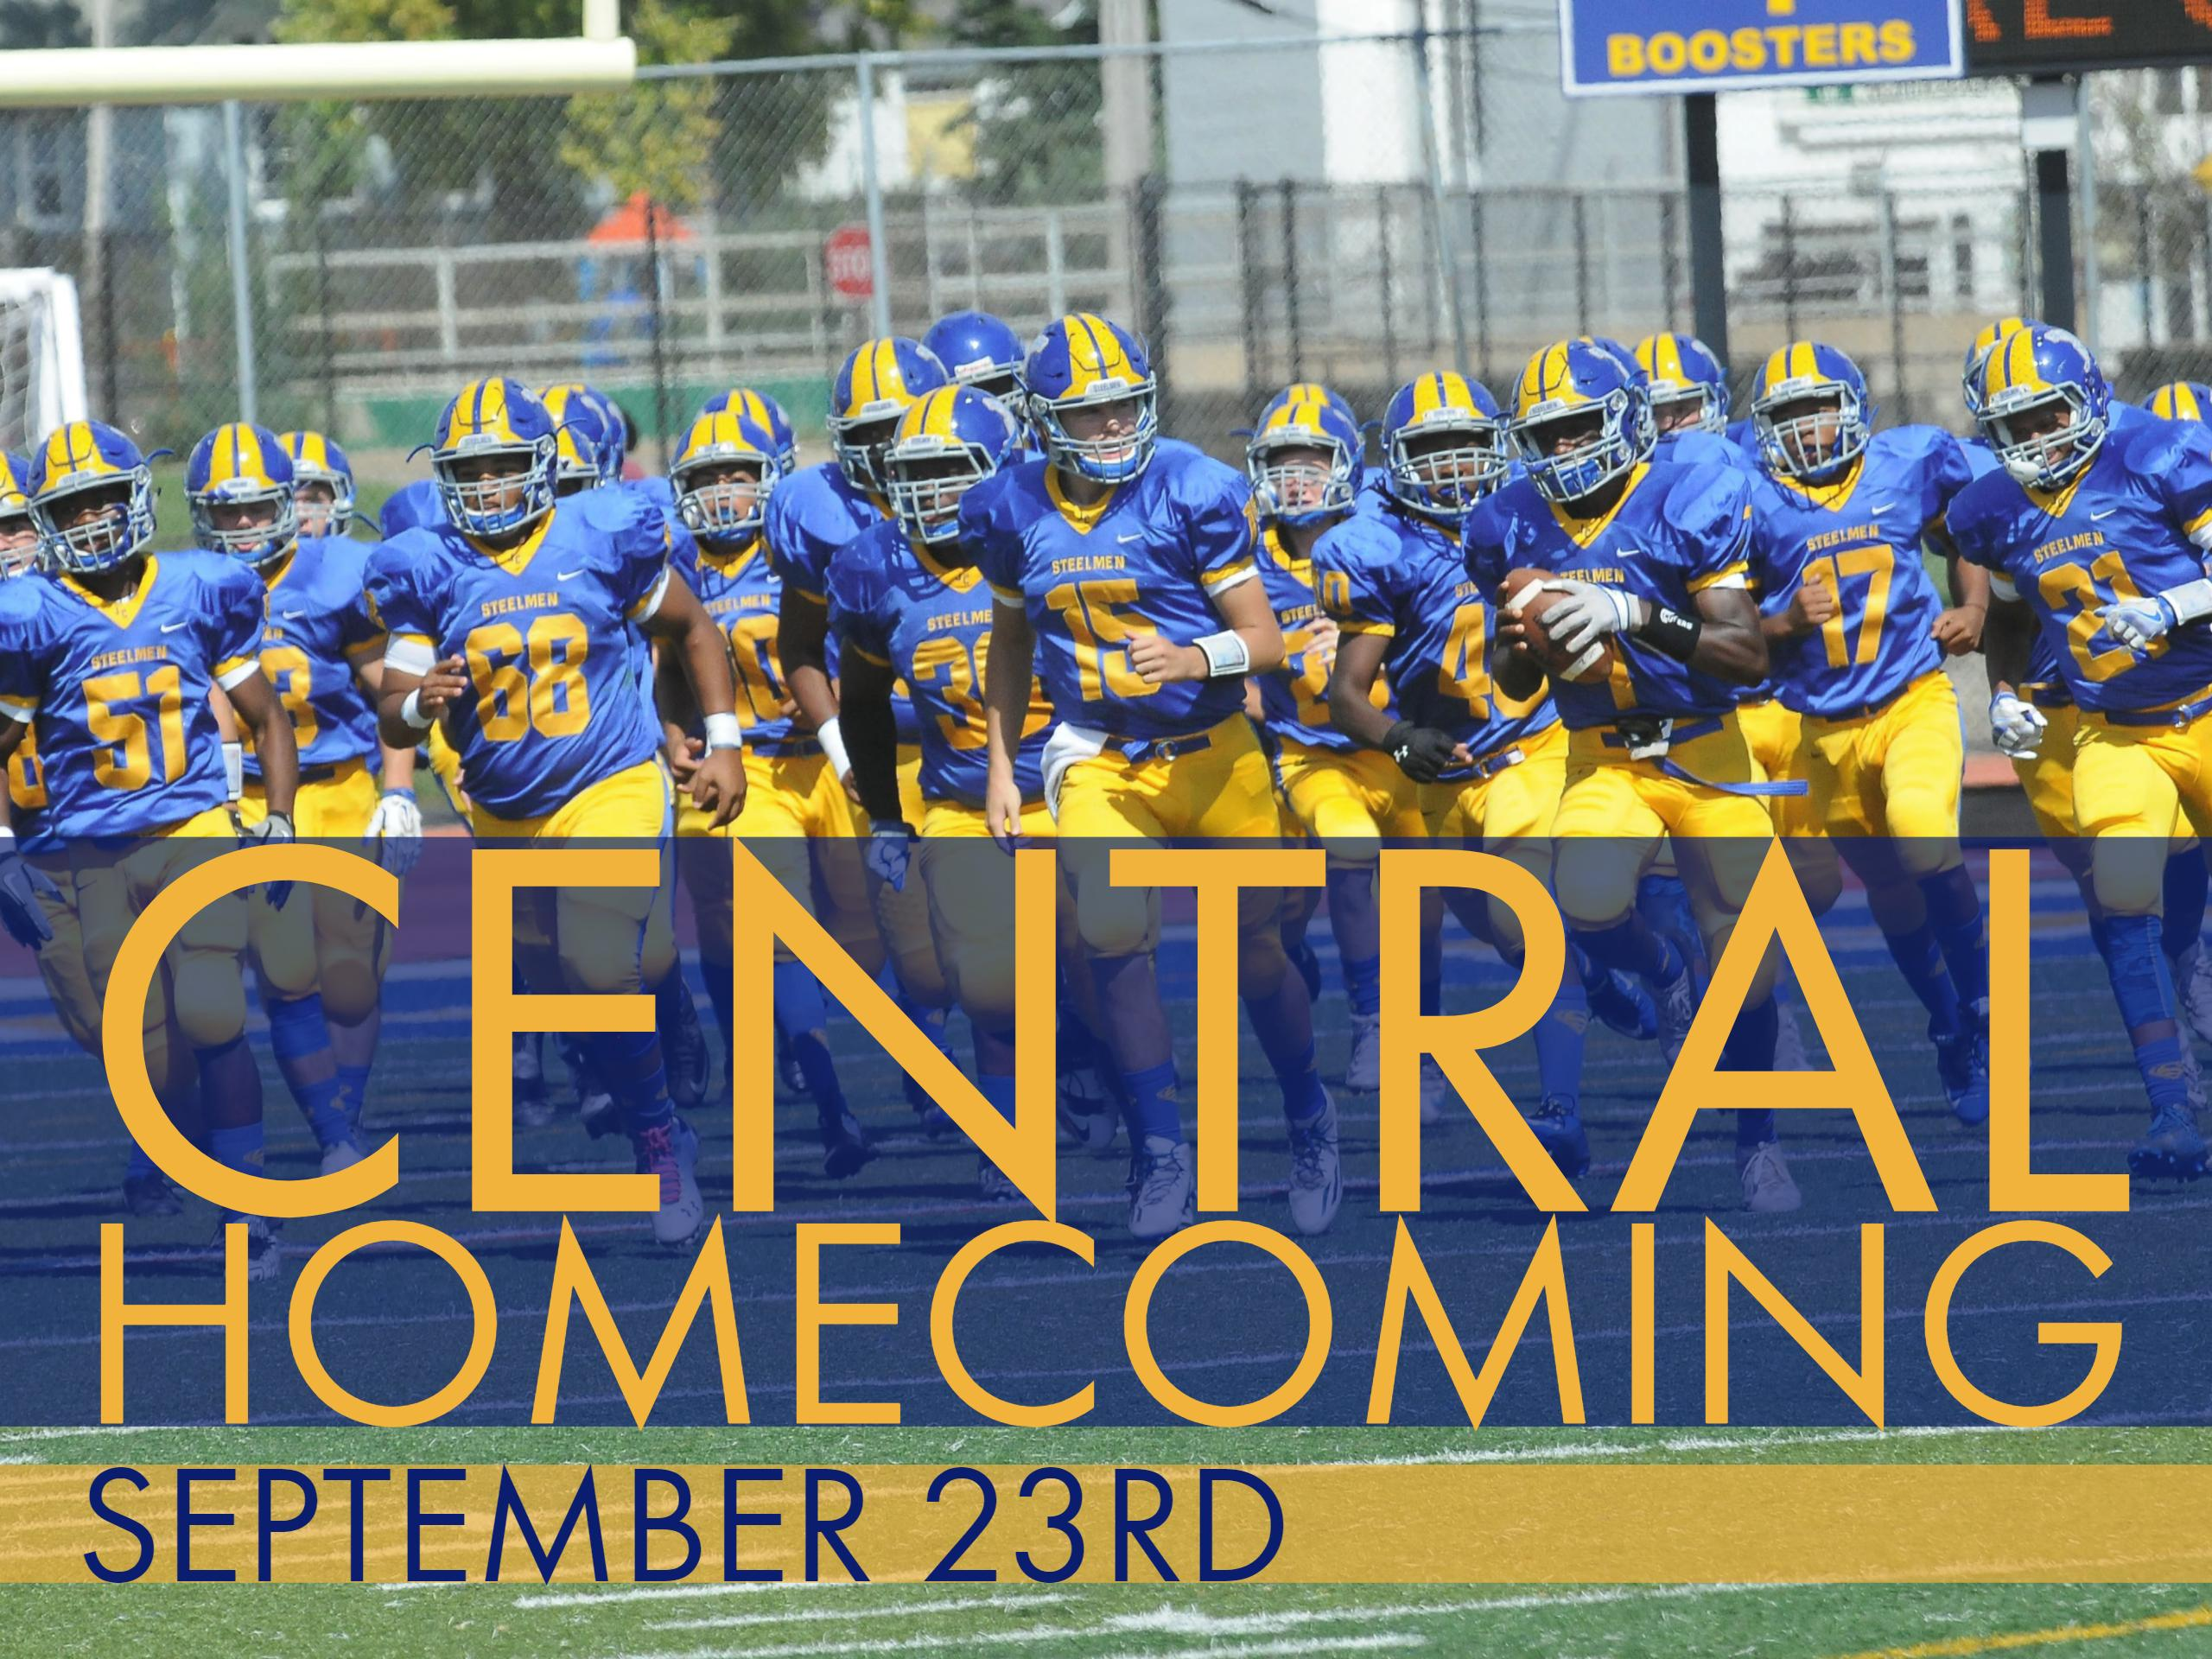 Central_Homecoming.jpg